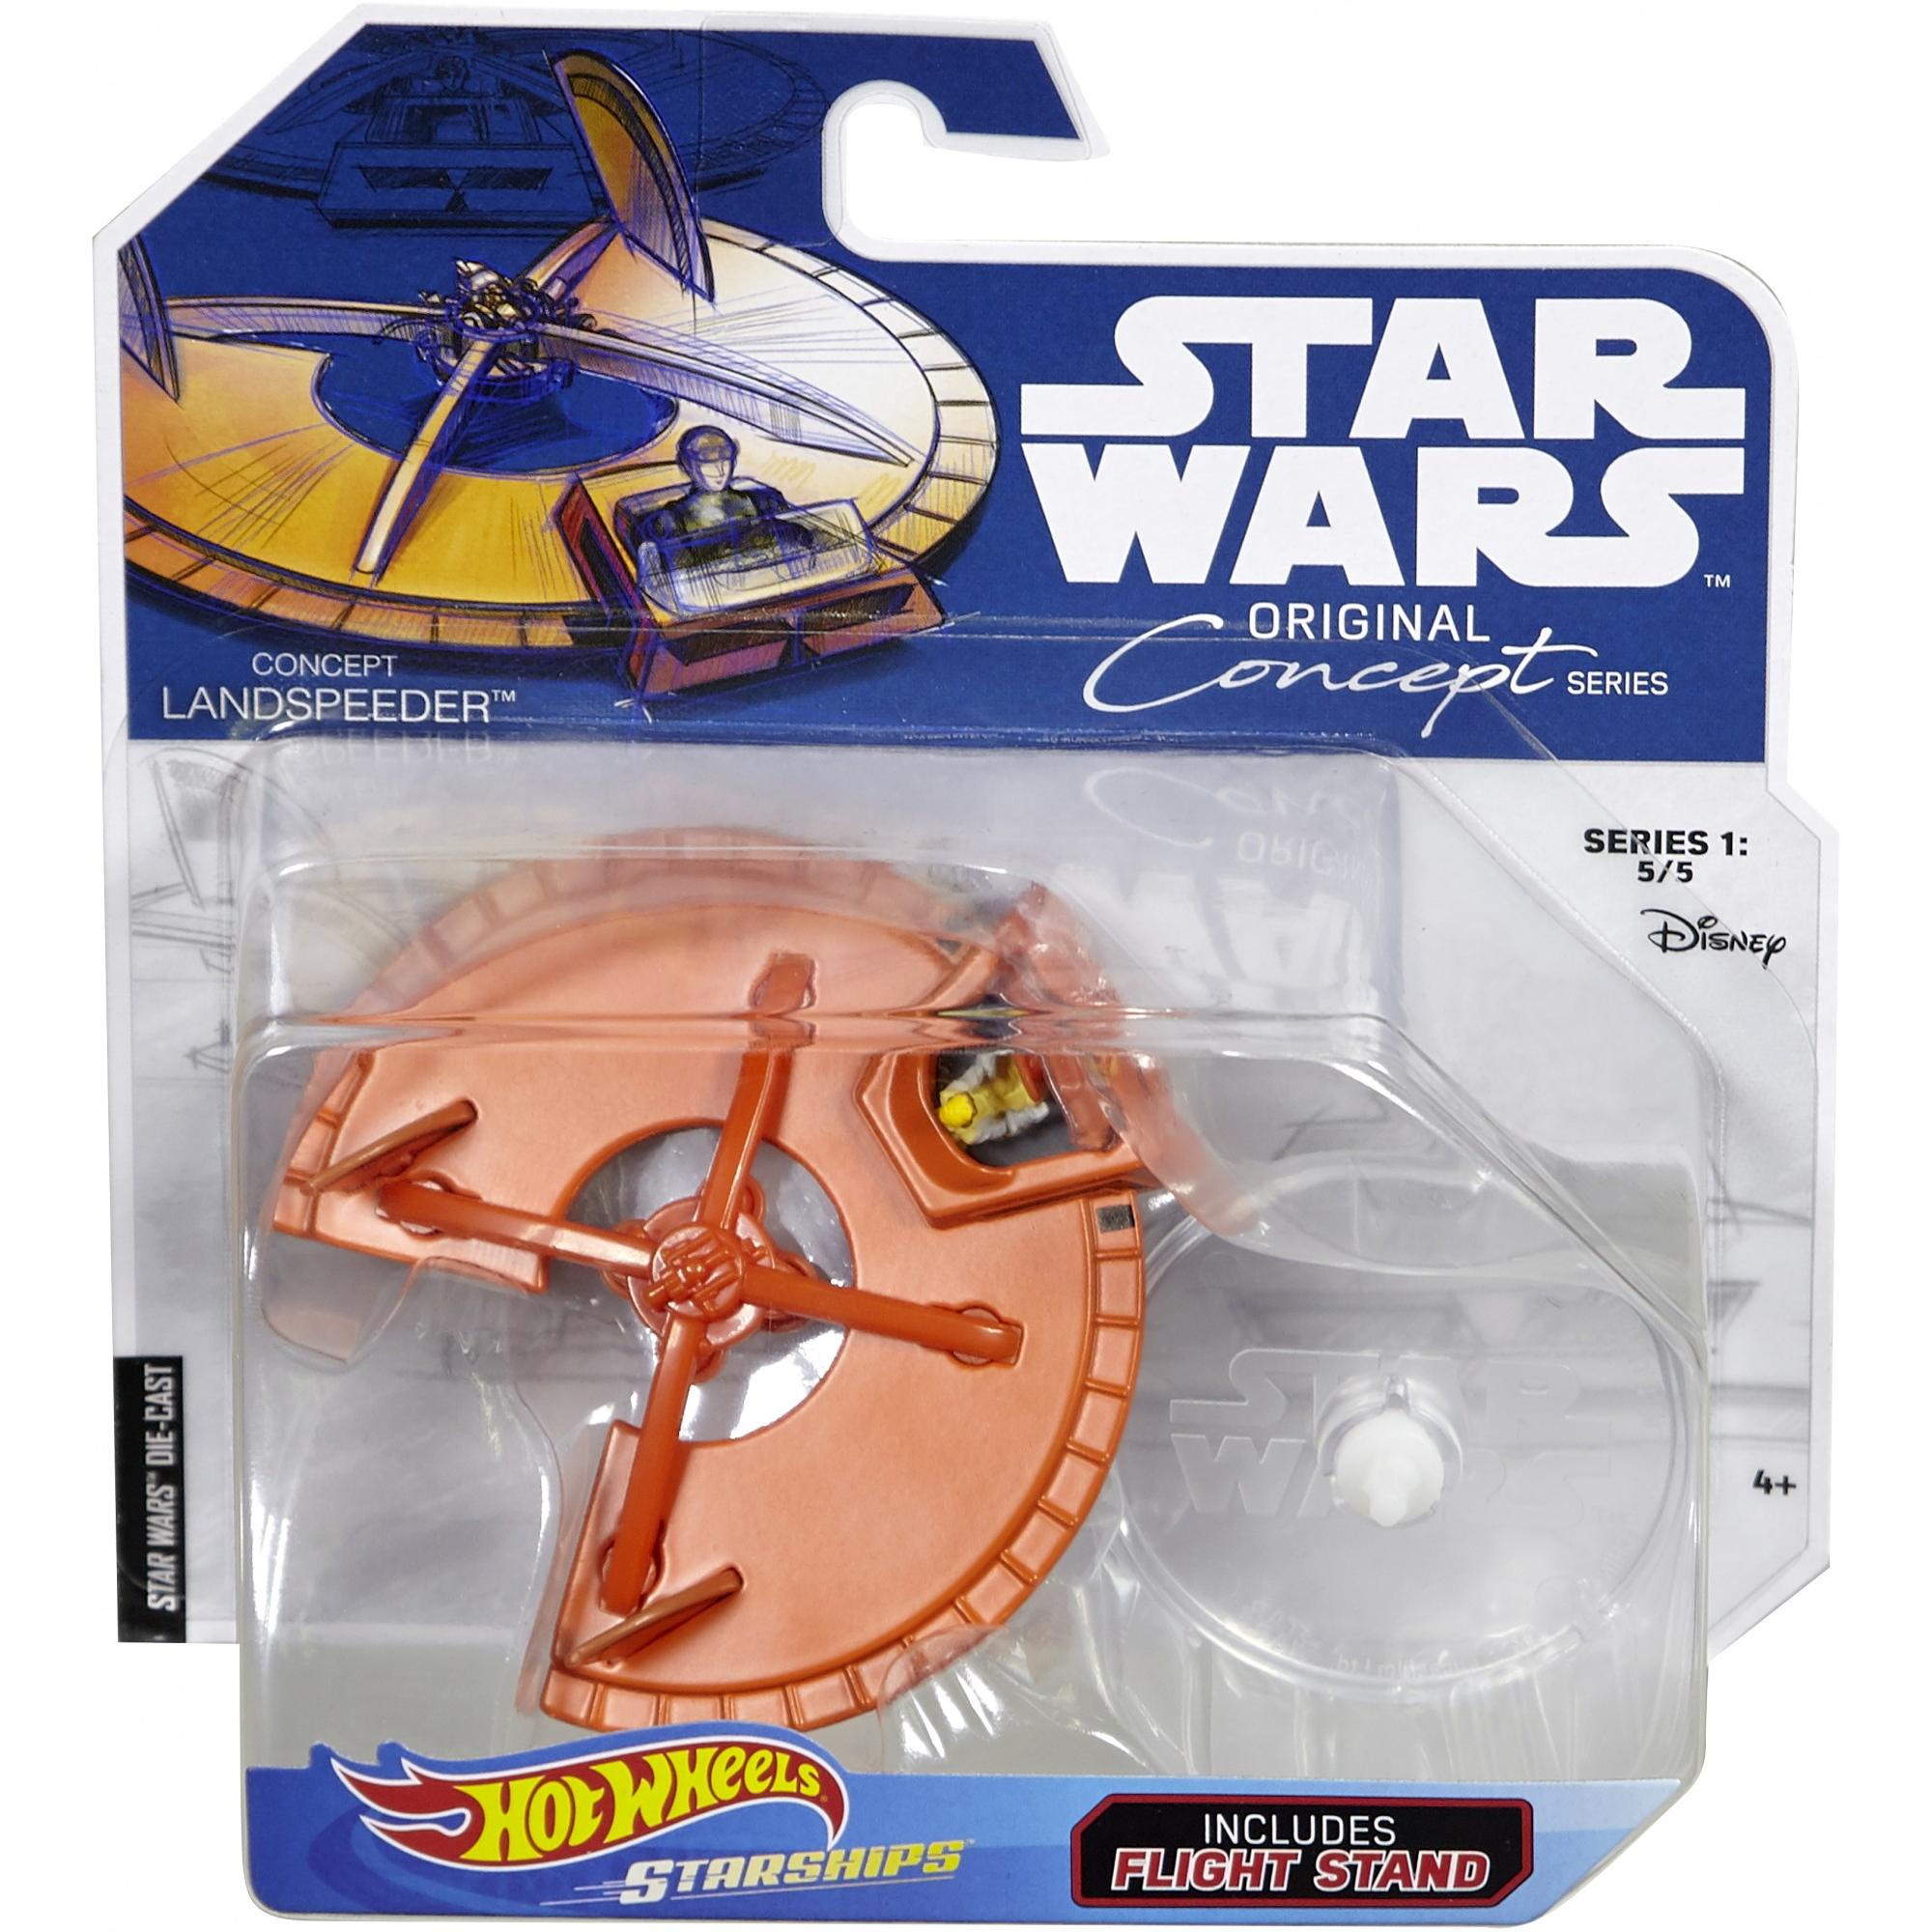 Disney Diecast X Wing Brand New Line Of Hot Wheels Star Wars Starships Concept